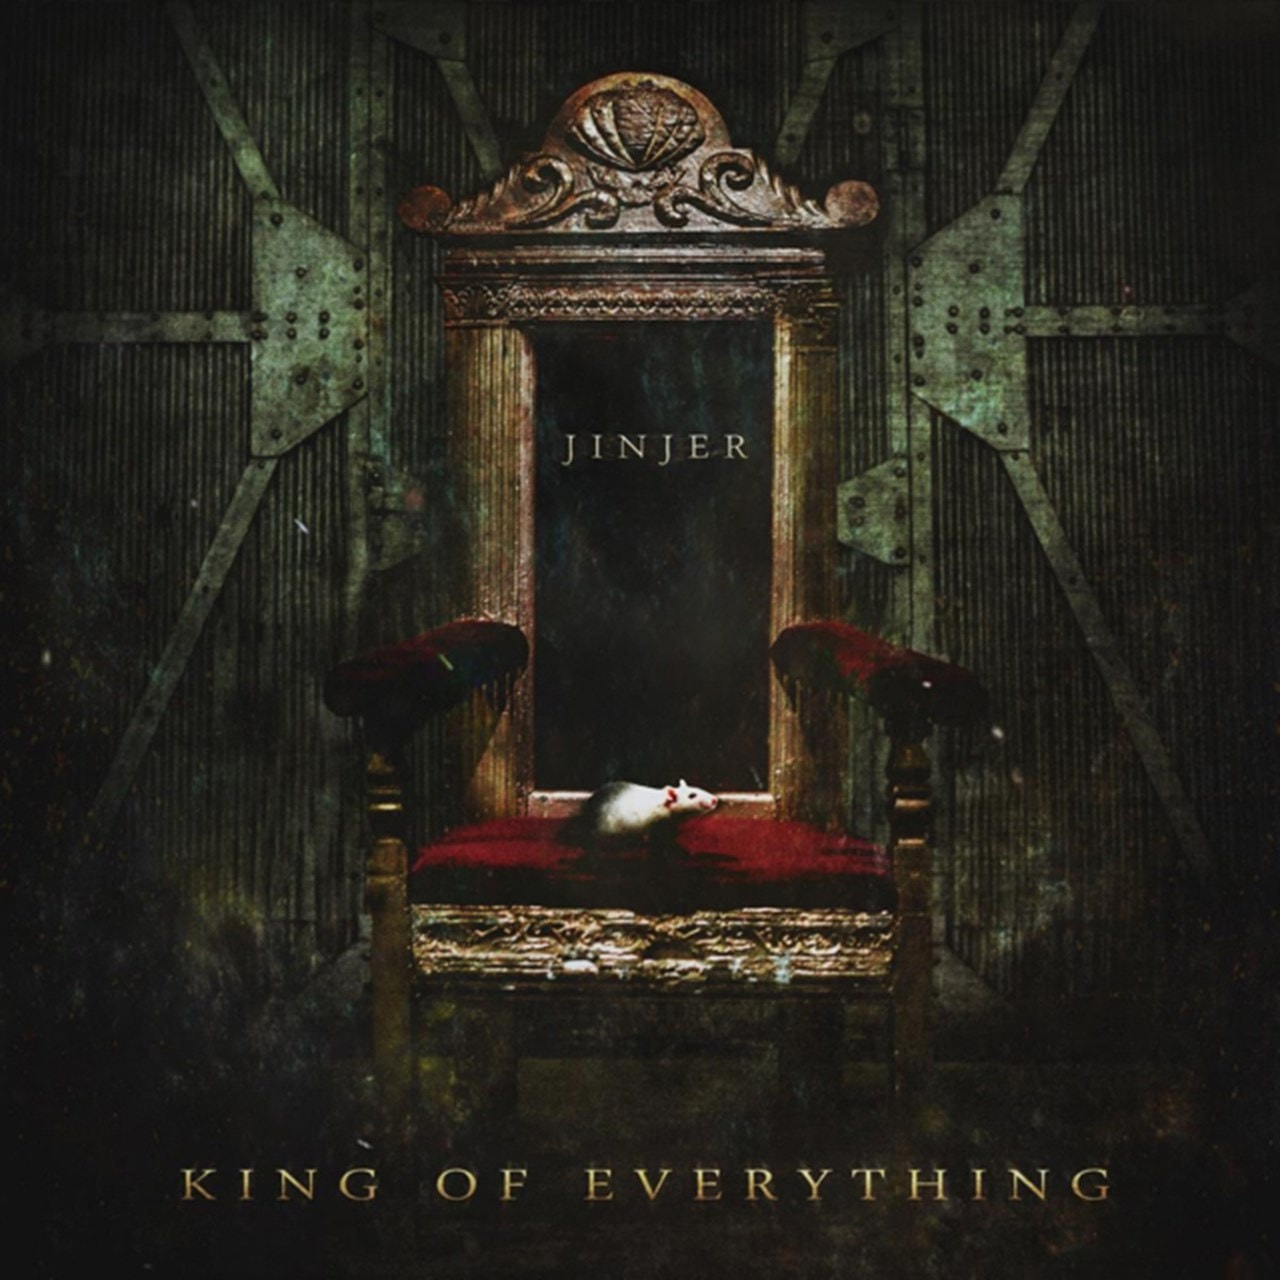 King of Everything - 1